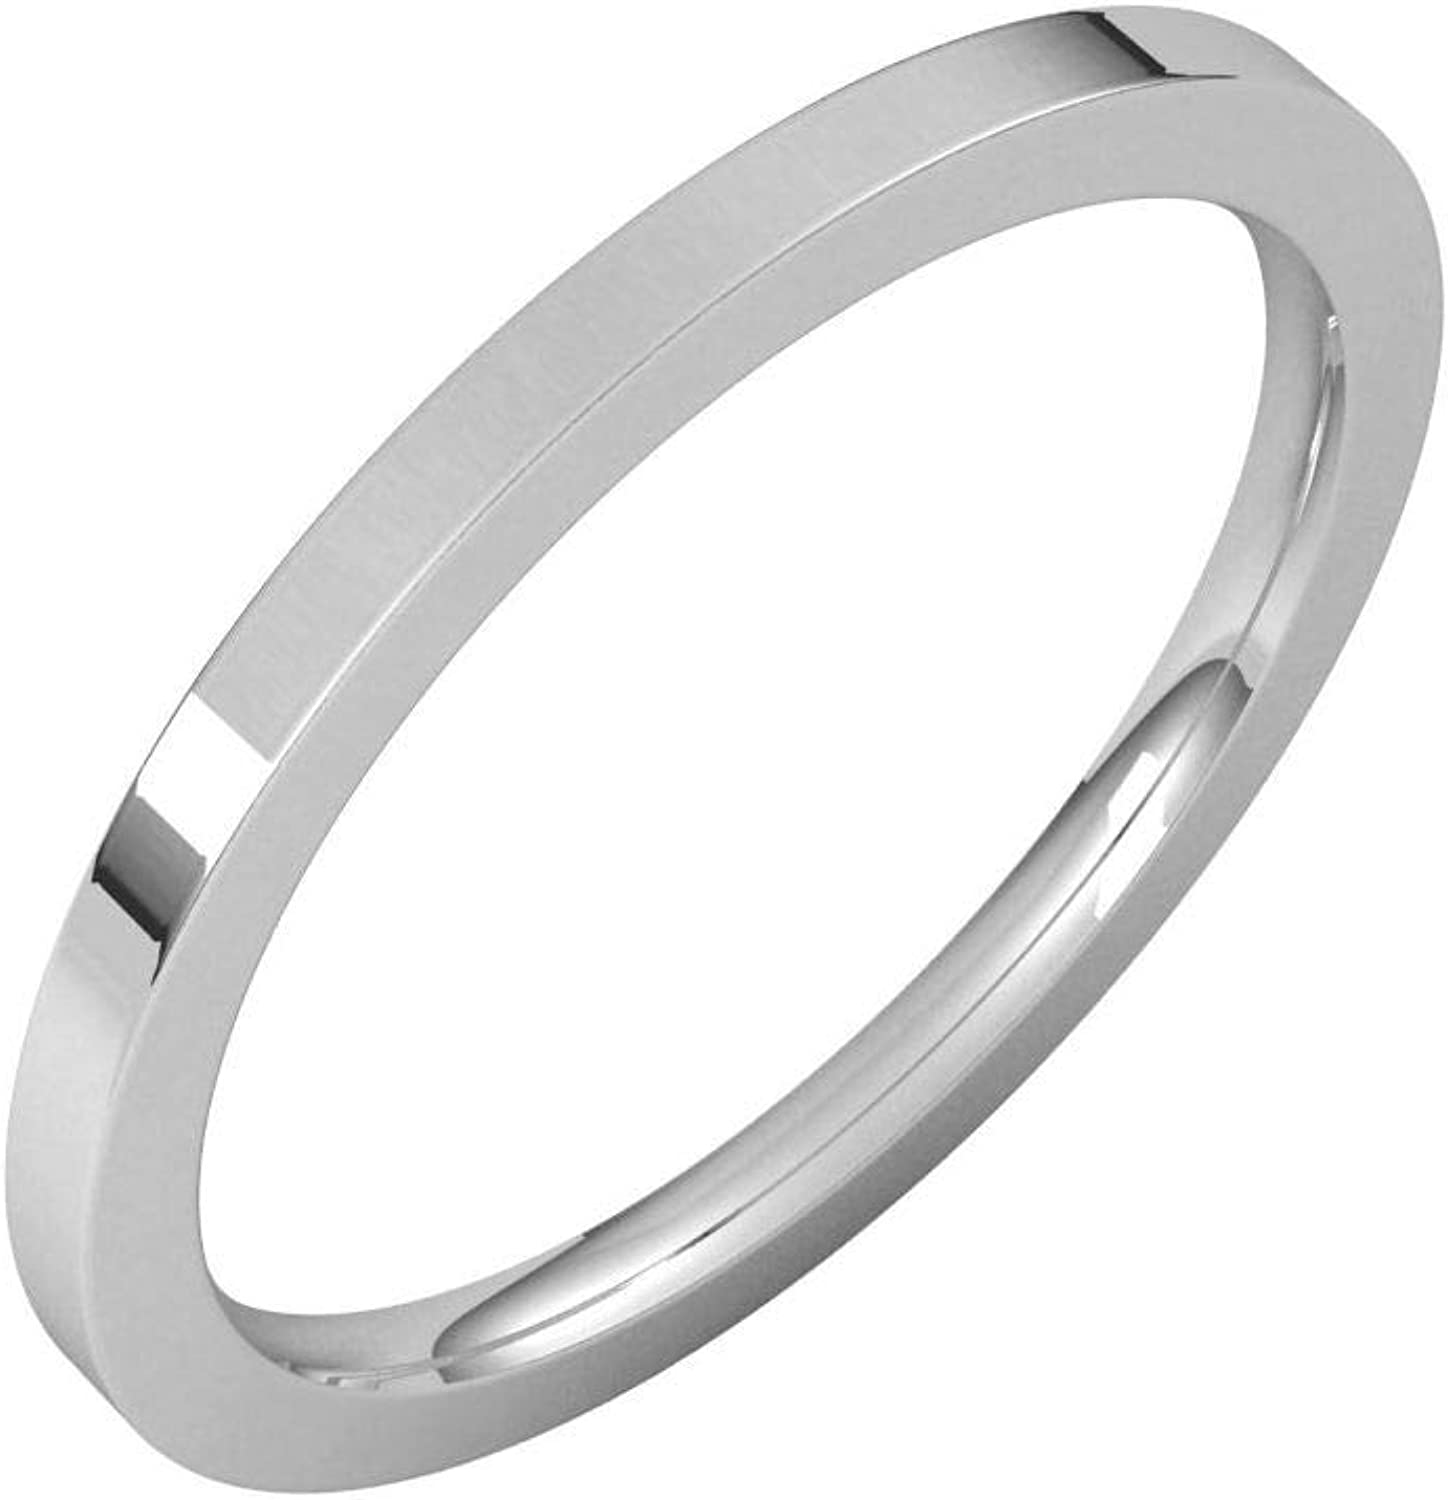 Oakland Mall Diamond2Deal 14K White 1.5 mm Flat Band New Free Shipping Wedding Ring Comfort Fit